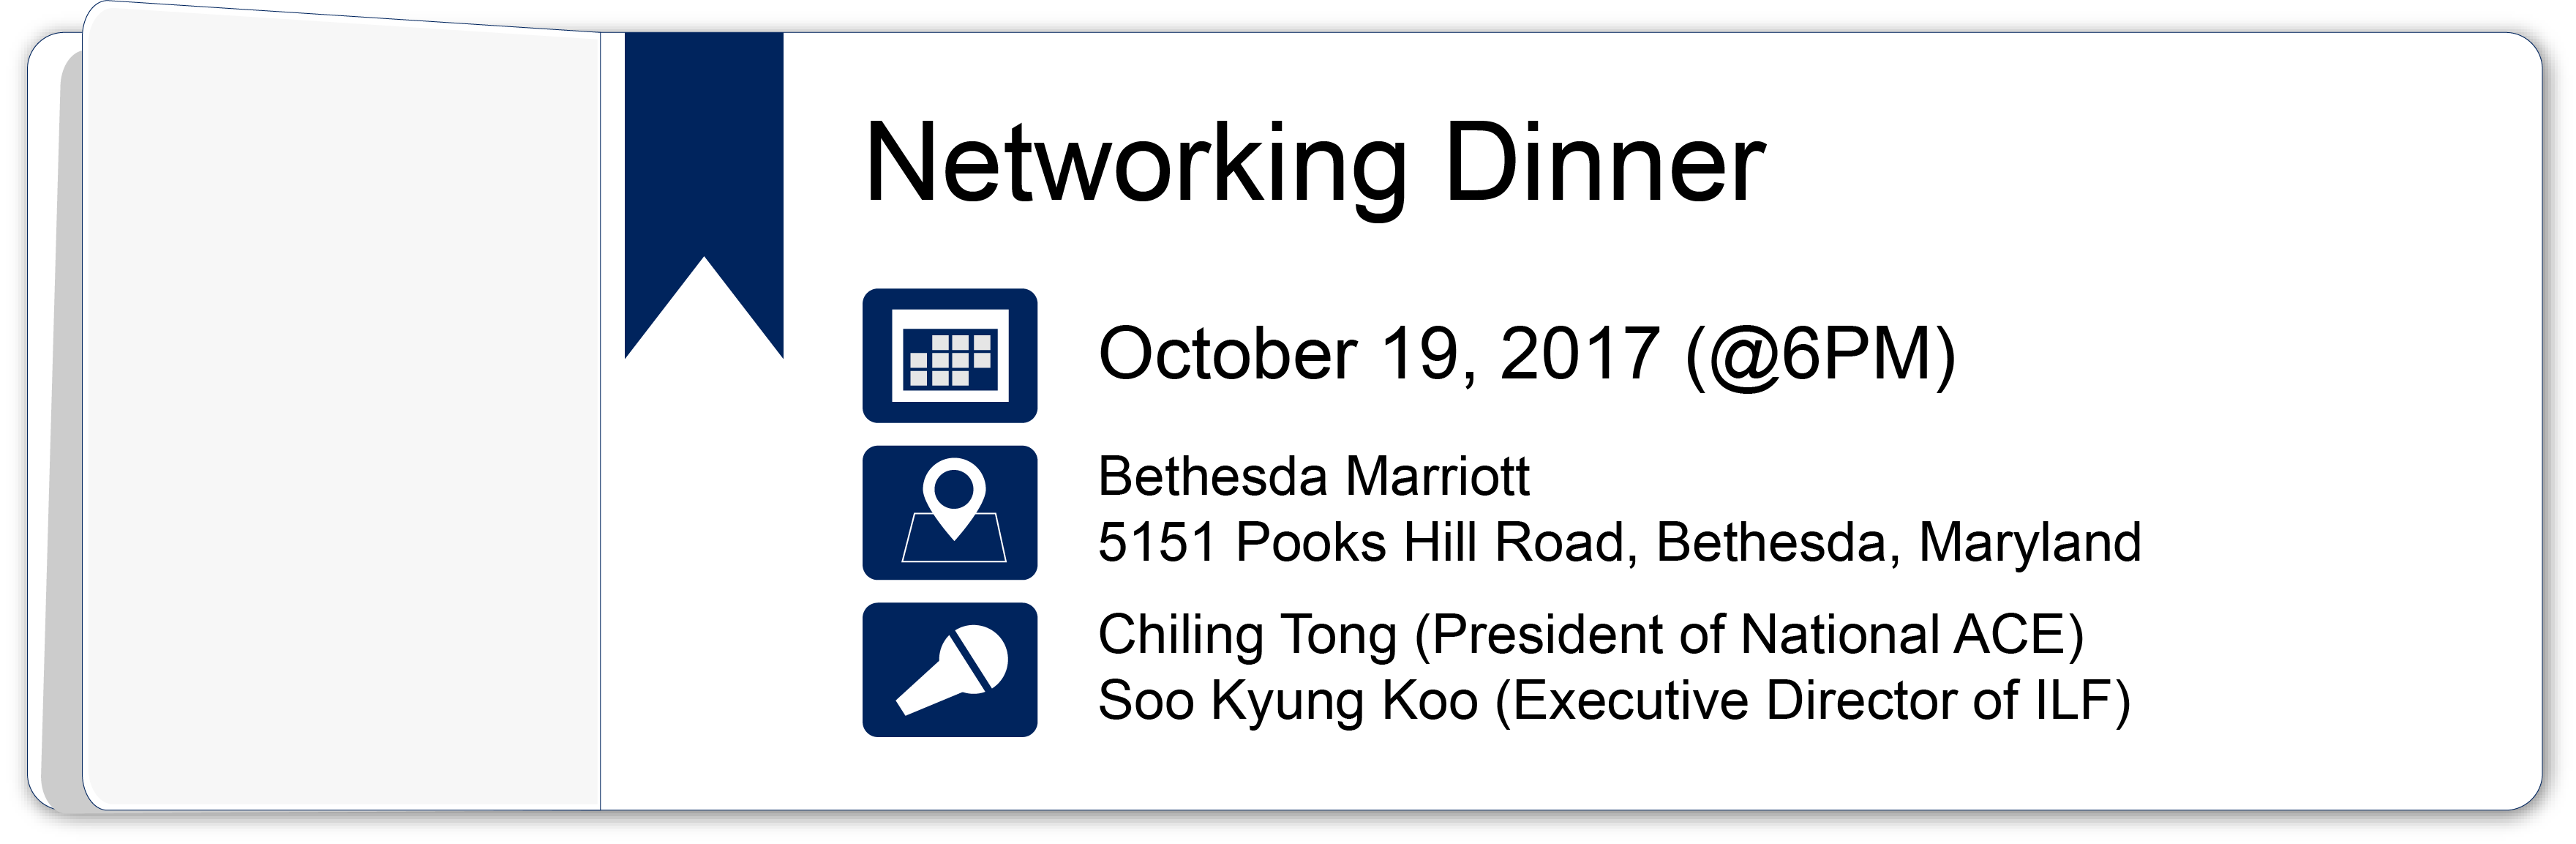 Networking Dinner – October 19, 2017